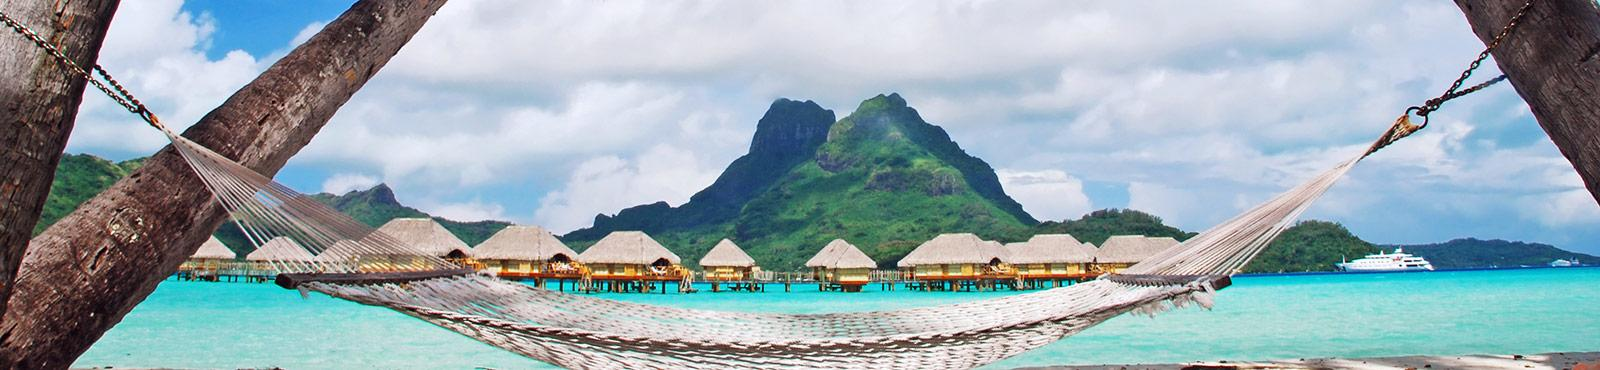 Best Luxury Travel Destinations in Asia Marquee